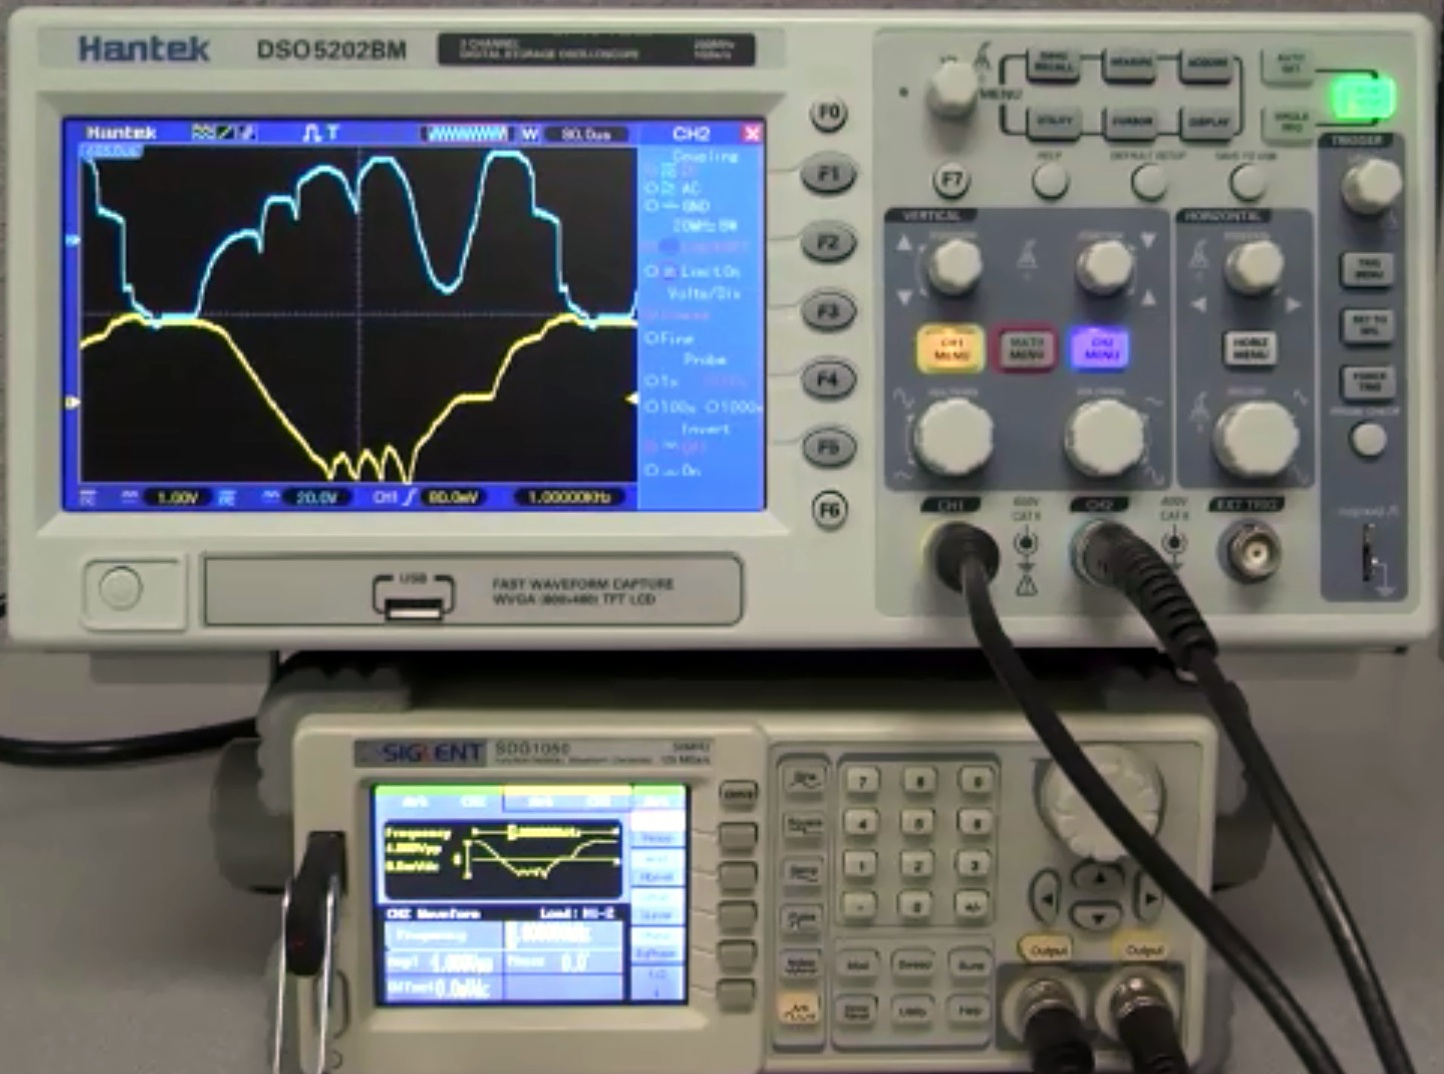 How to draw an Arbitrary Waveform using a function generator from